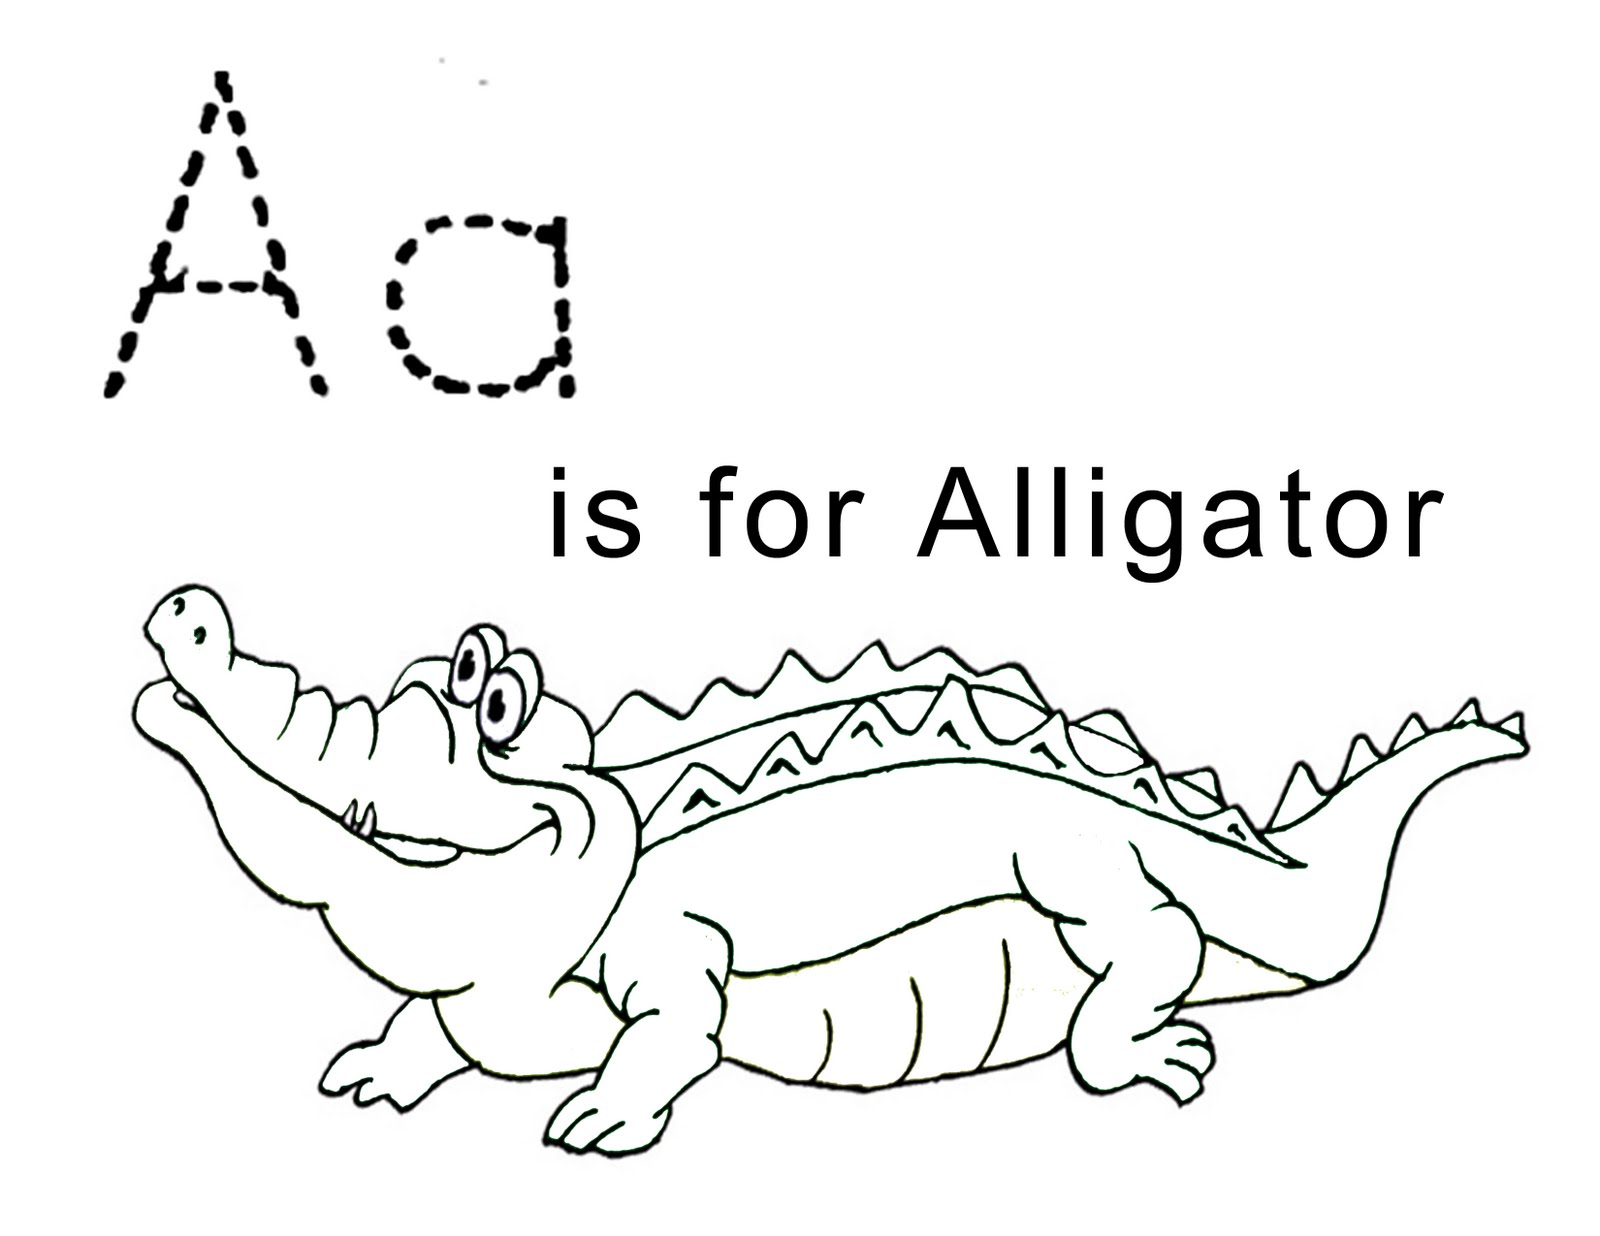 http://www.coloringme.com/wp-content/uploads/2014/07/Alligator-Coloring-Pages-for-Kids.jpg